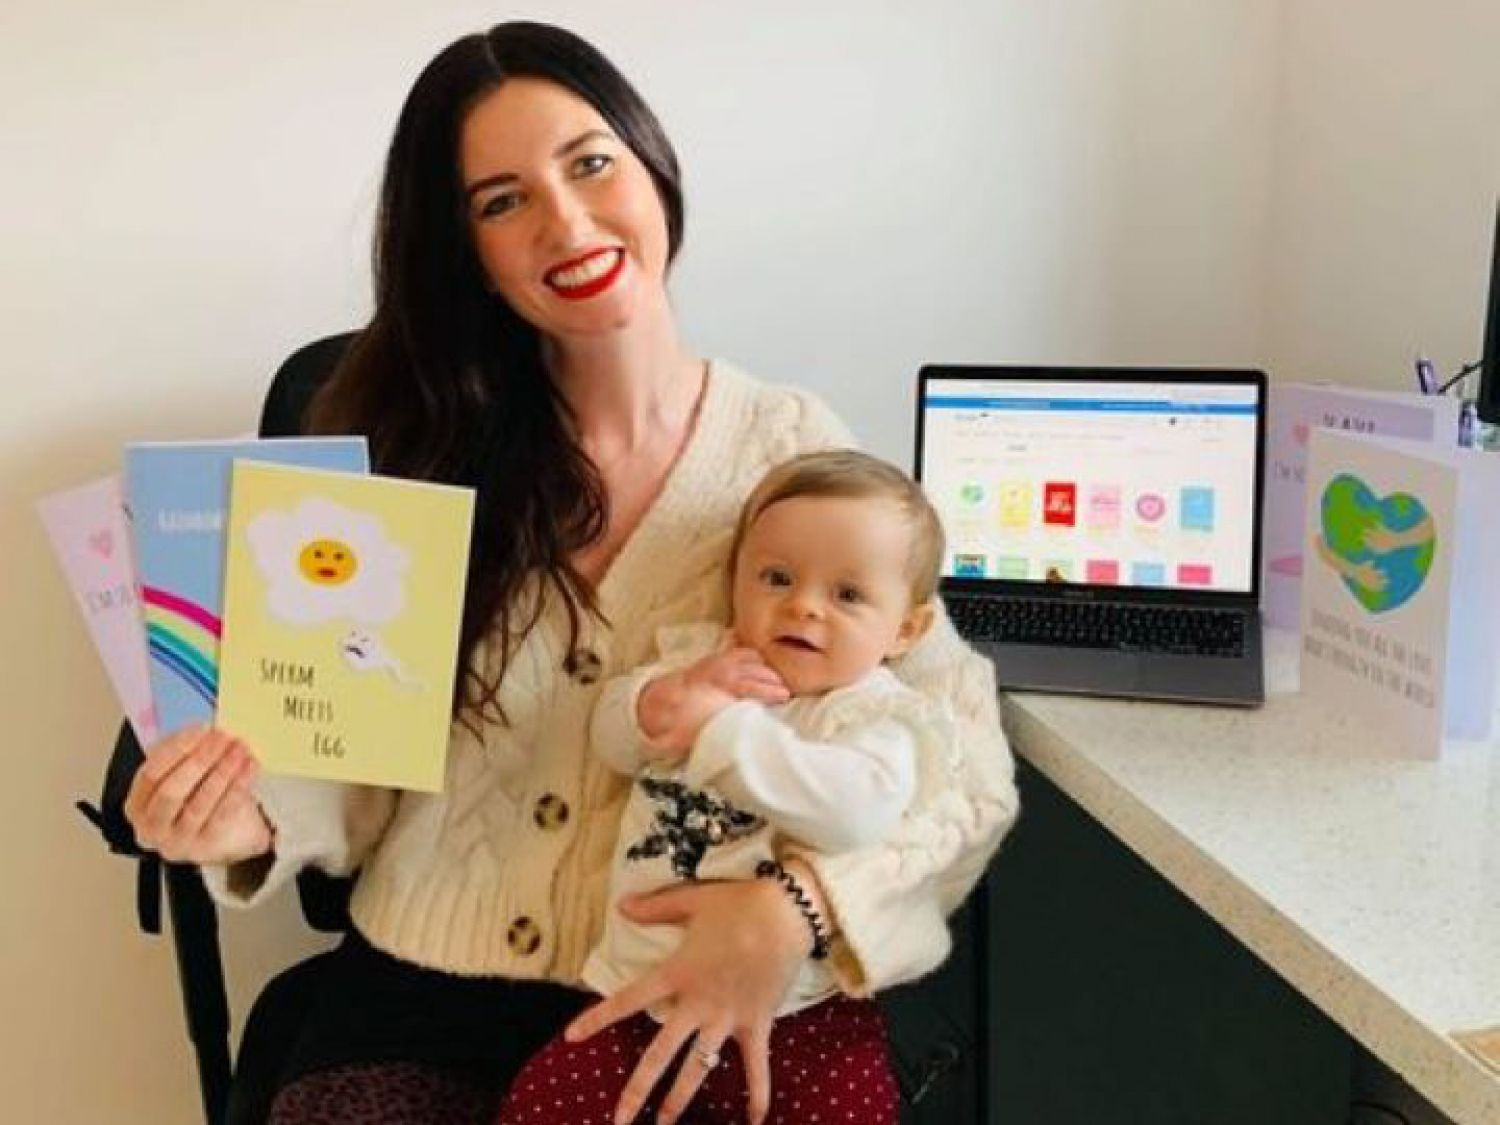 Baby search finds joy in creating cards